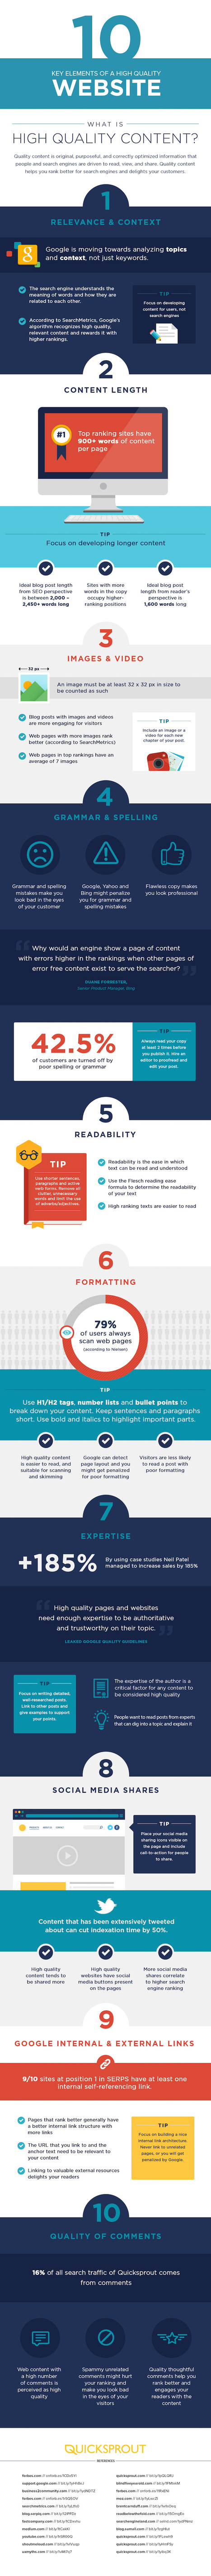 The 10 Key Elements of a High Quality Website | SEO and Social Media Marketing | Scoop.it